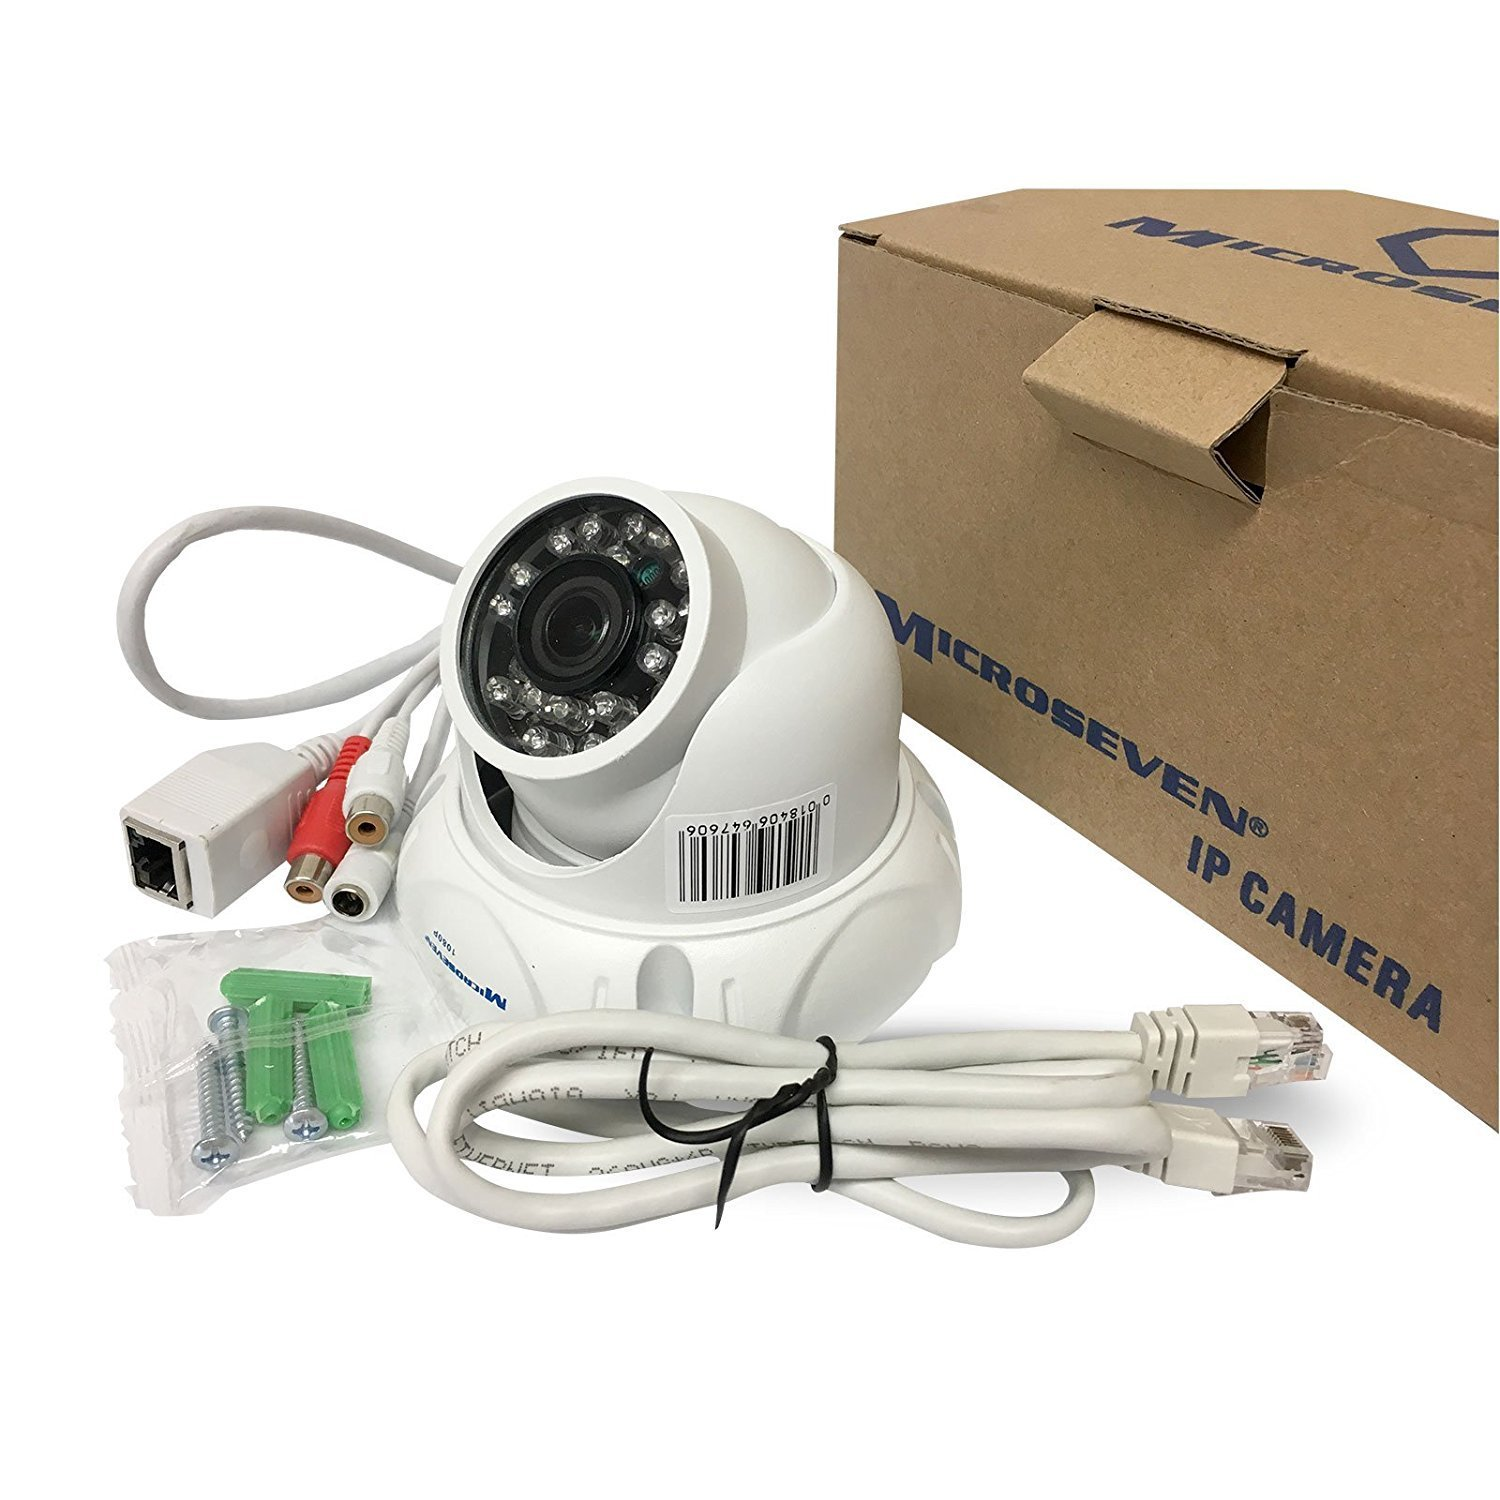 "2X M7D77-POE HD 1080P 1/2.5"" COMS Ultra-Wide View Angle (150°) 3MP Lens +Two Way Audio P2P IP Camera Build-in POE Day & Night Indoor Outdoor-Compatible with Any ONVIF NVR, Free M7 Cloud and Free Live Streaming on microseven.tv /Works with Amazon Alexa (With Built-in POE)"